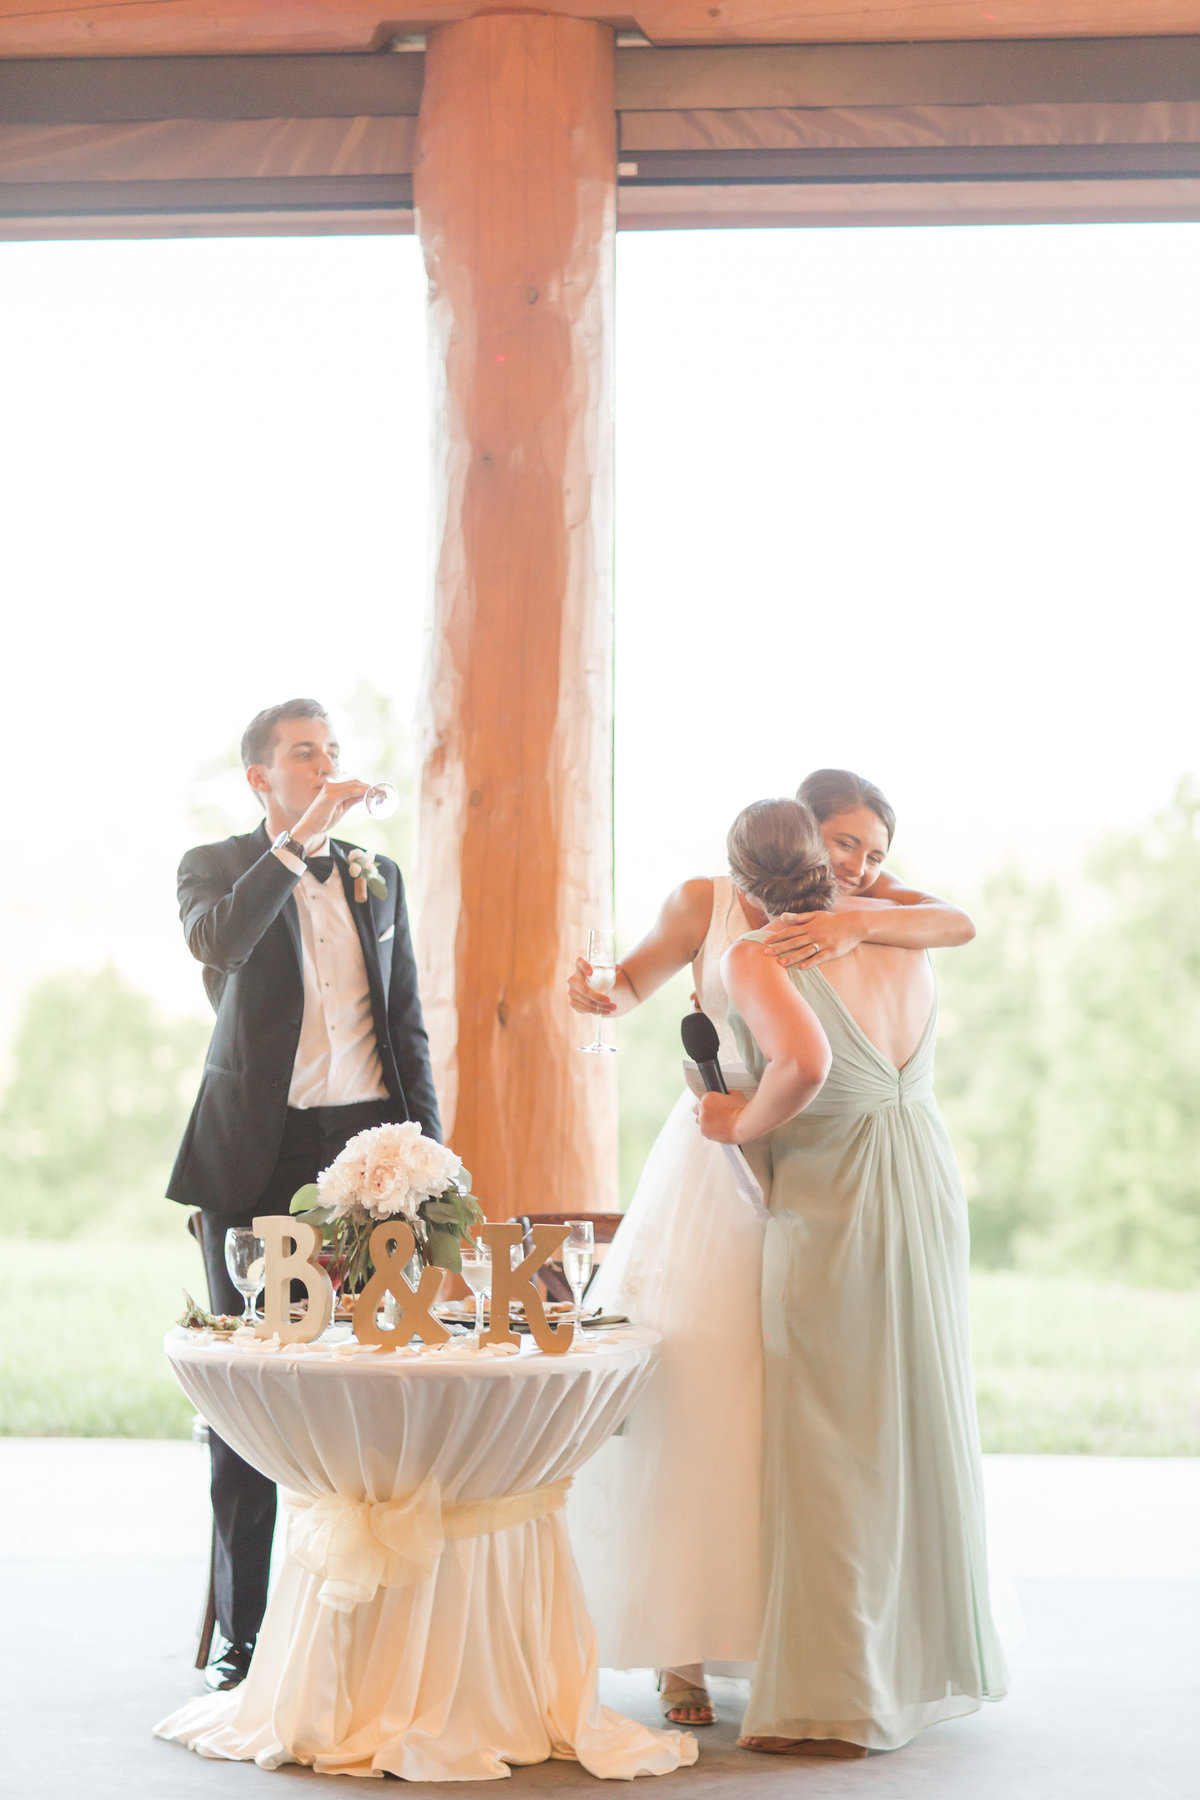 HYP_Kristina_and_Benedikt_Wedding_0081